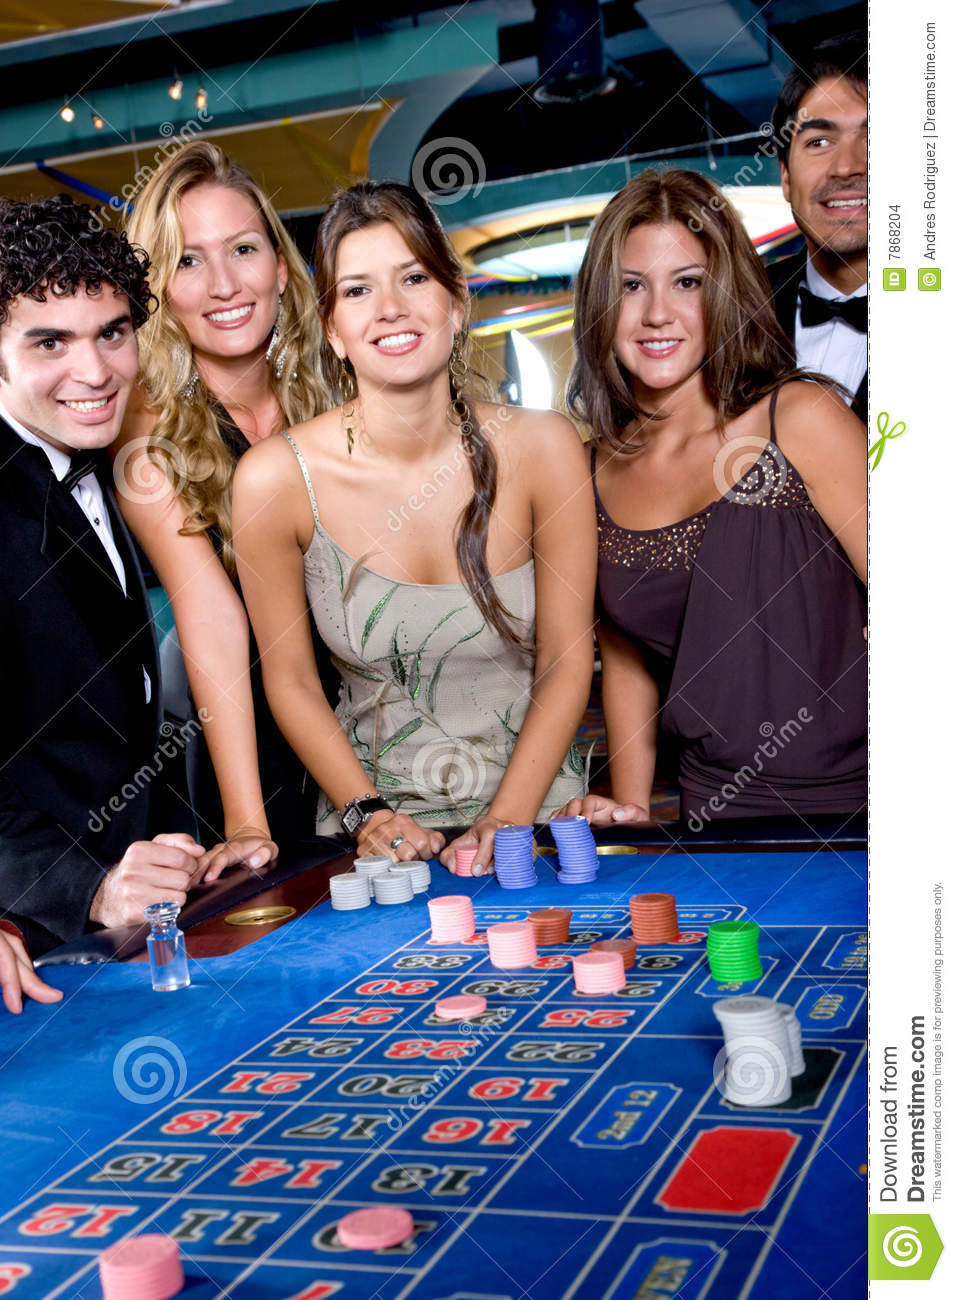 casino players | All the action from the casino floor: news, views and more